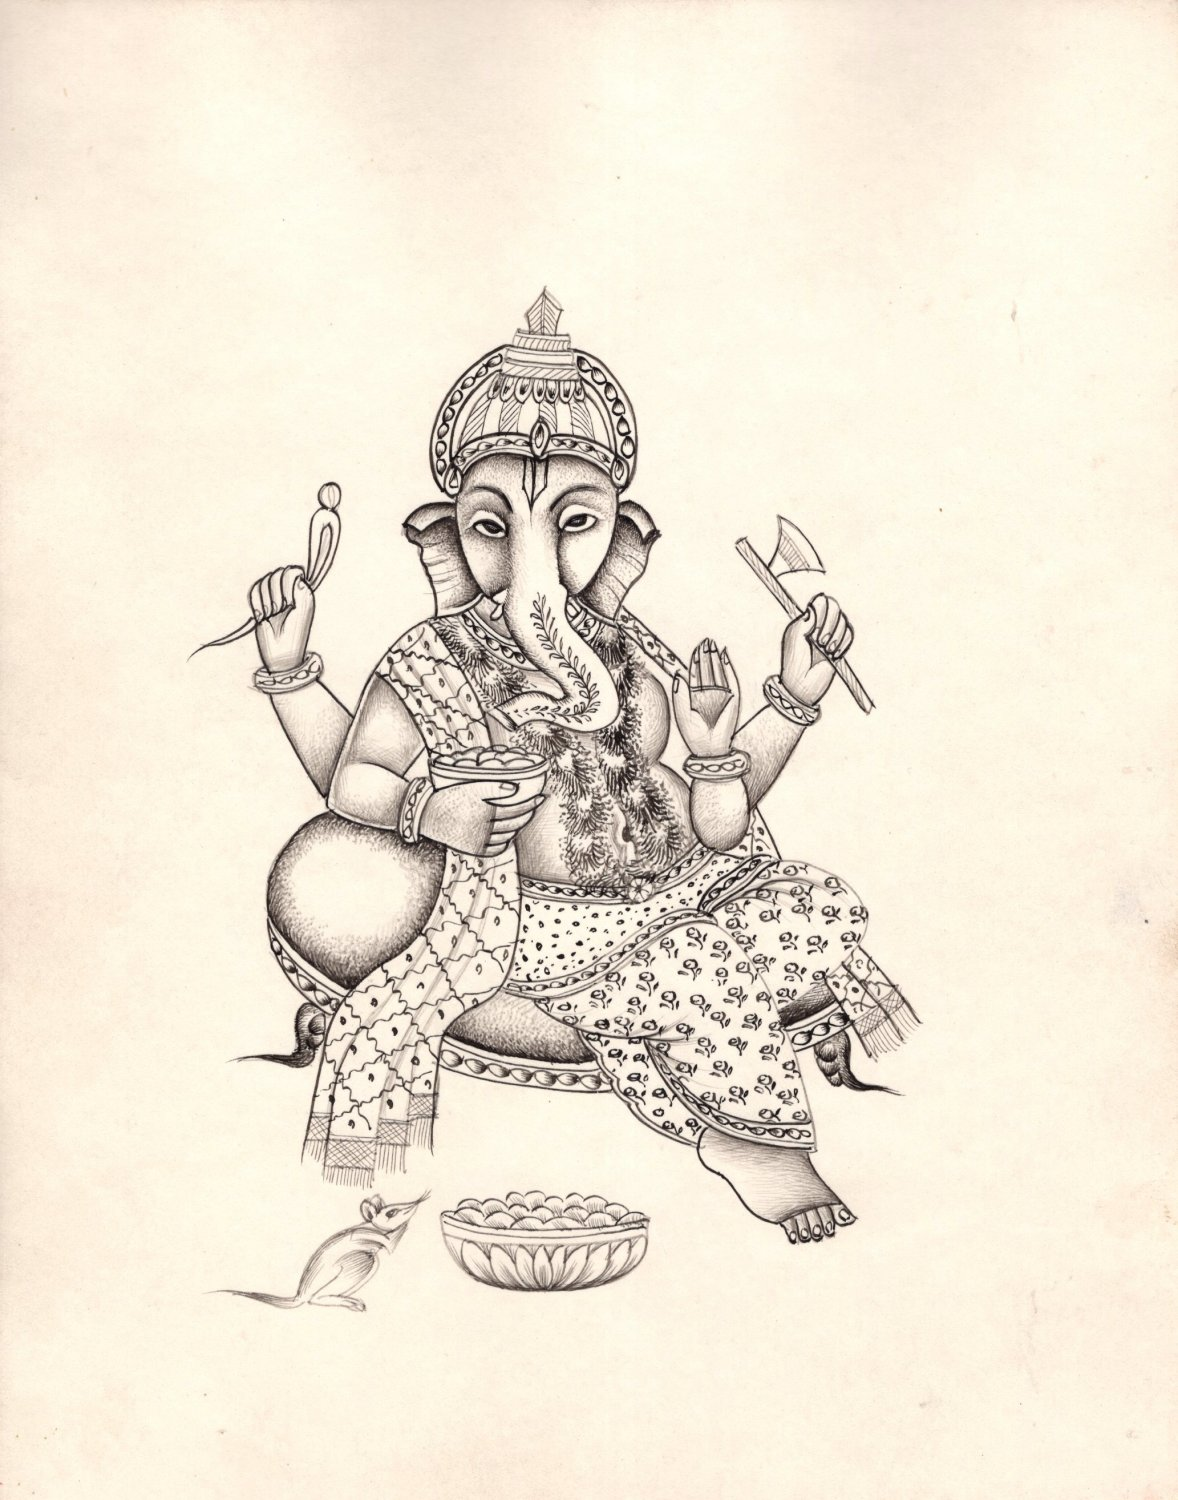 Ganesha Painting Handmade Indian Hindu God Ganesh Ethnic Religion Ink Sketch Art